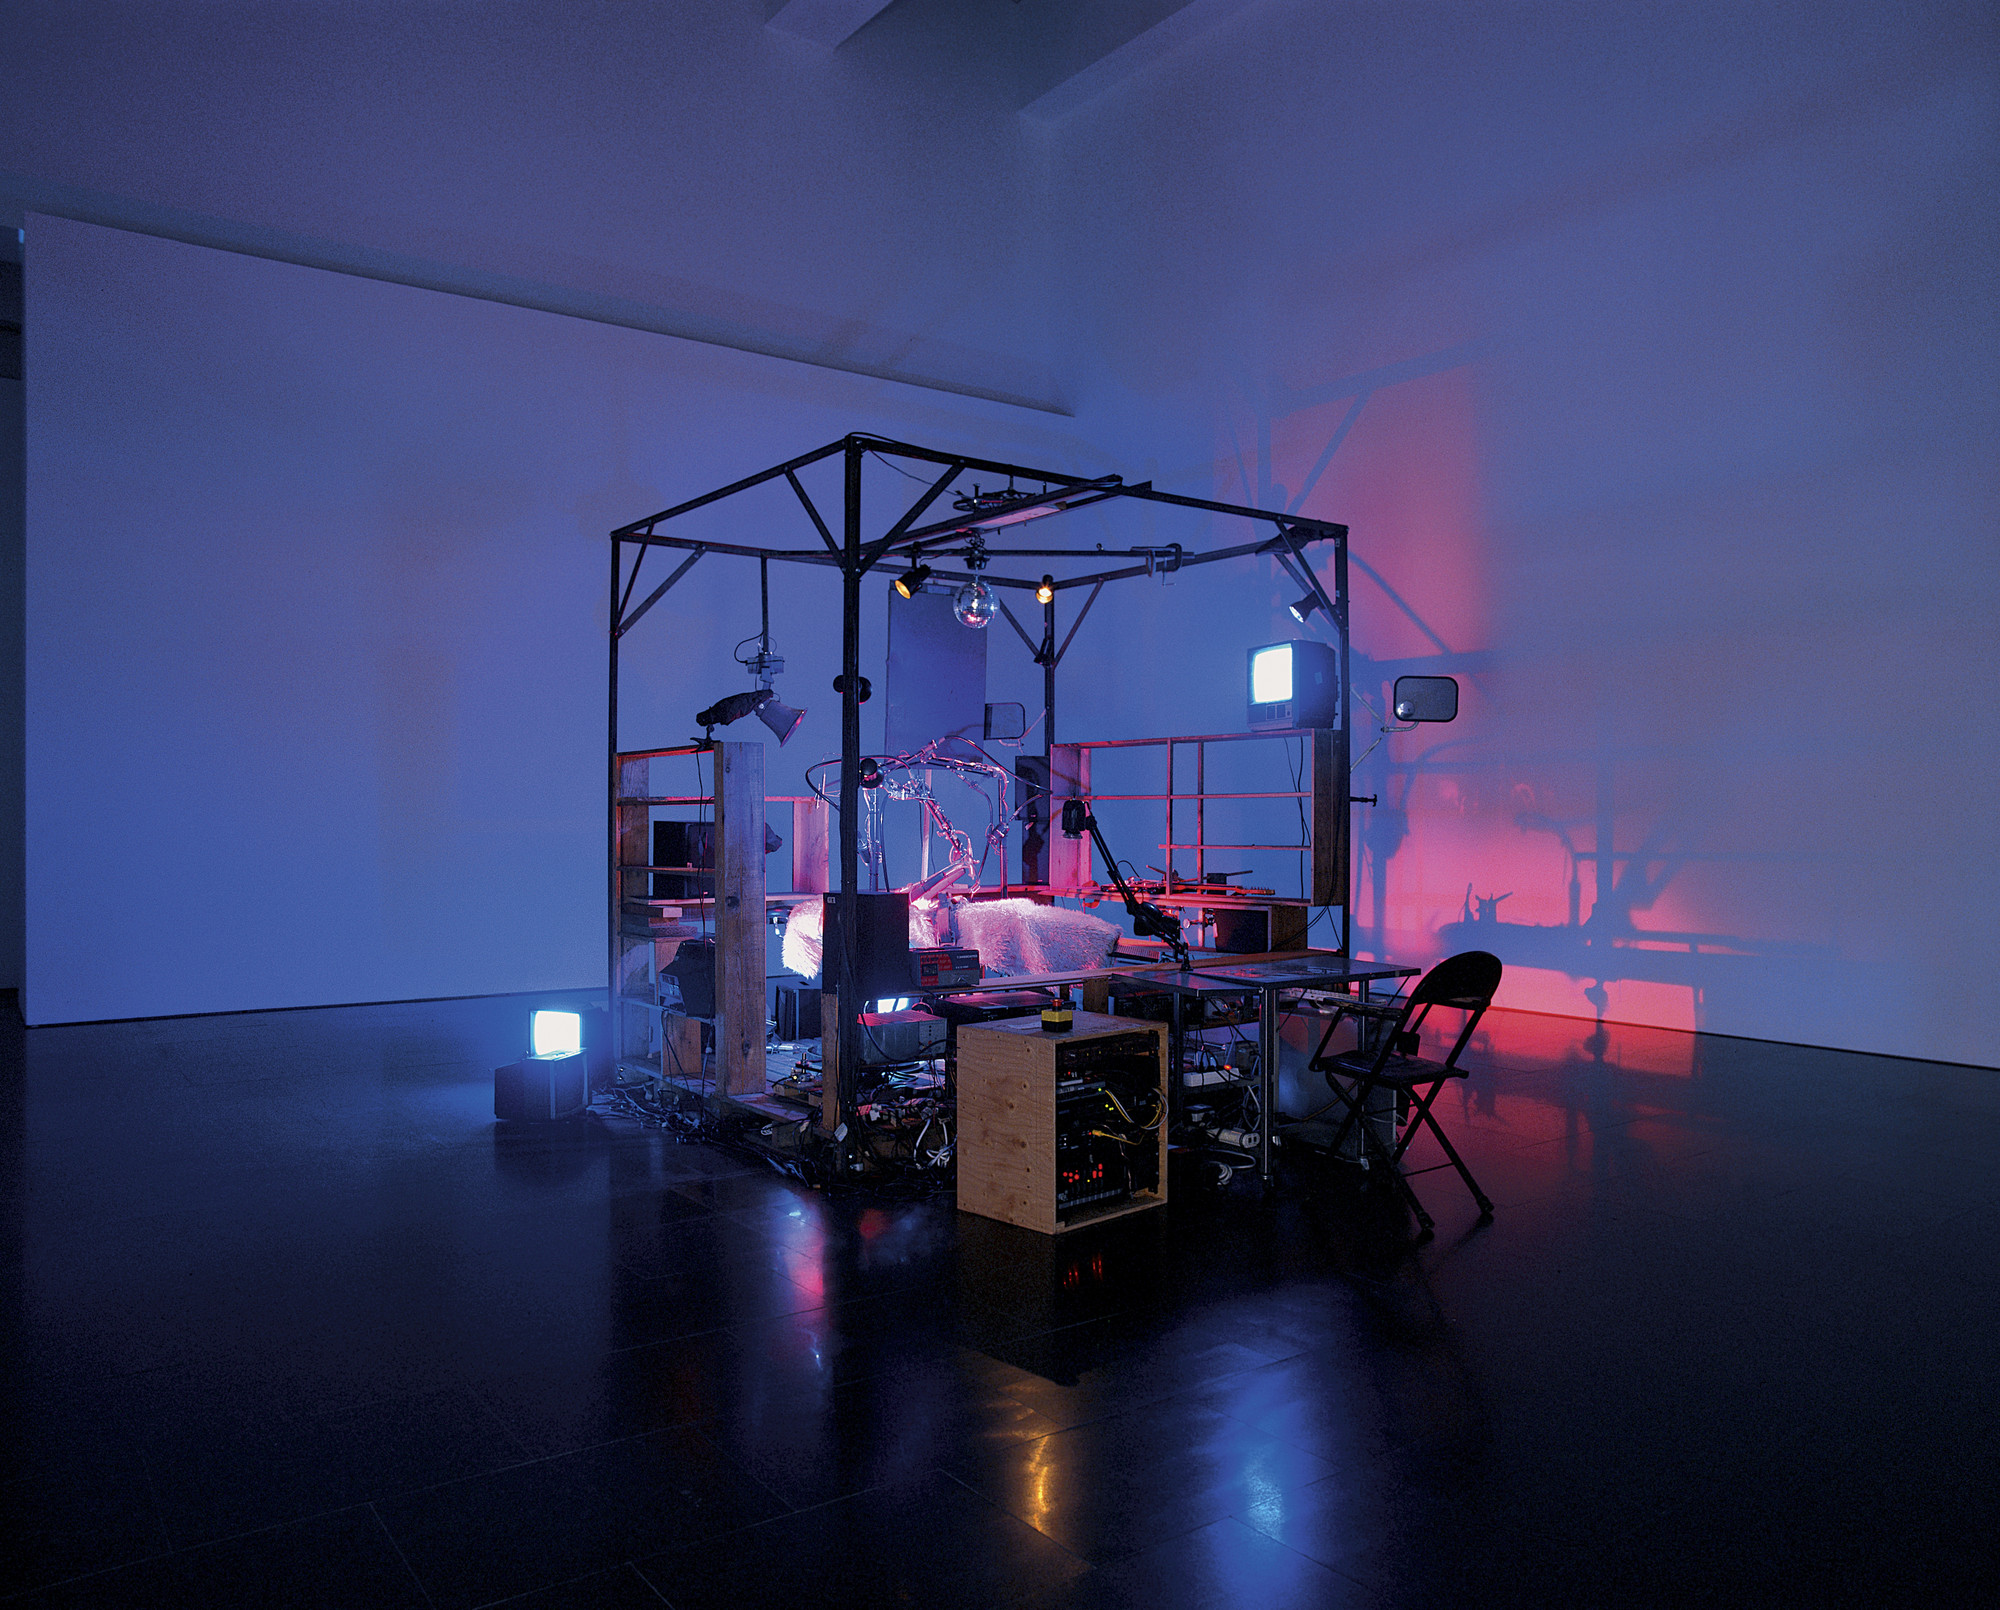 Janet Cardiff, George Bures Miller. The Killing Machine. 2007